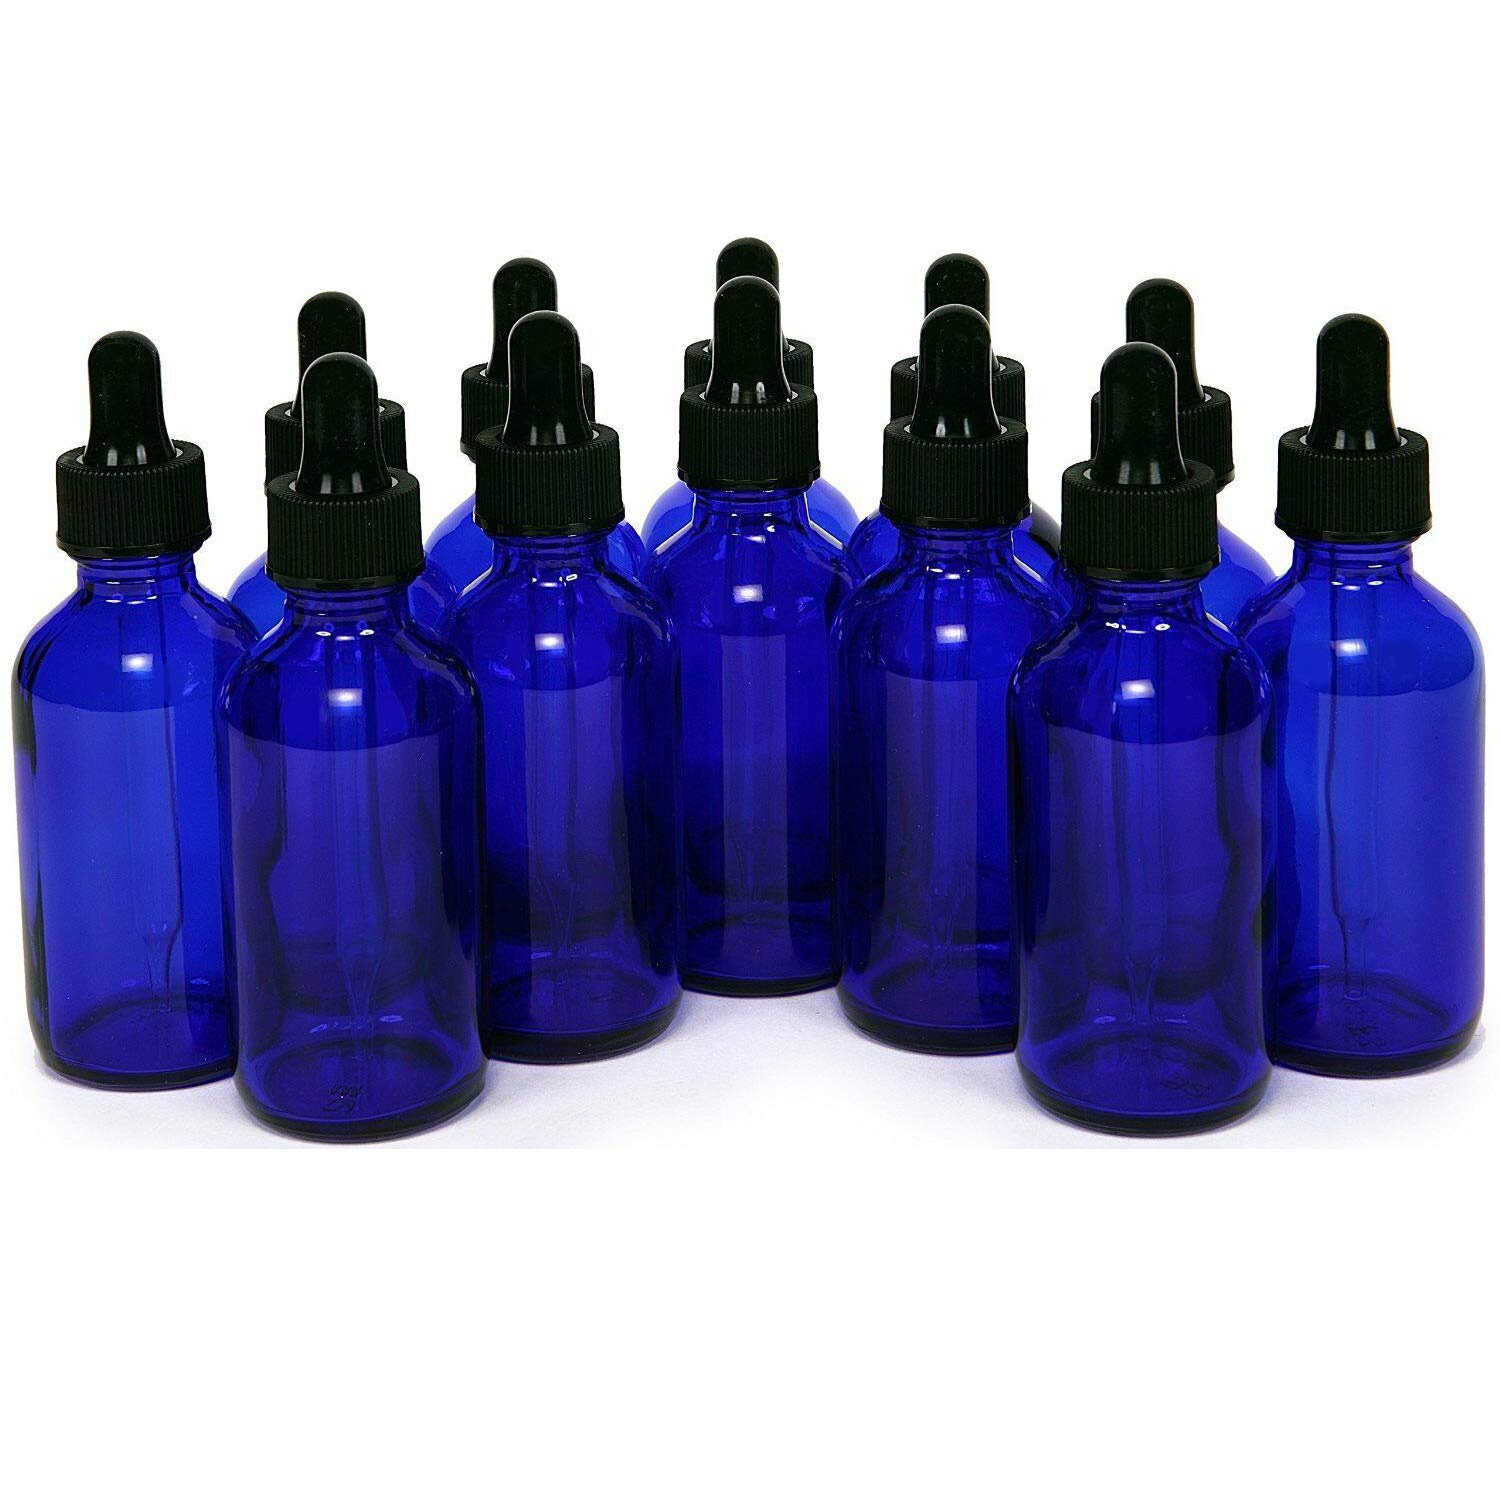 30ML Essential Oil Bottles Blue Glass Bottles With Glass Dropper Travel Dropper Liquid Pipette Bottle Refillable Bottles